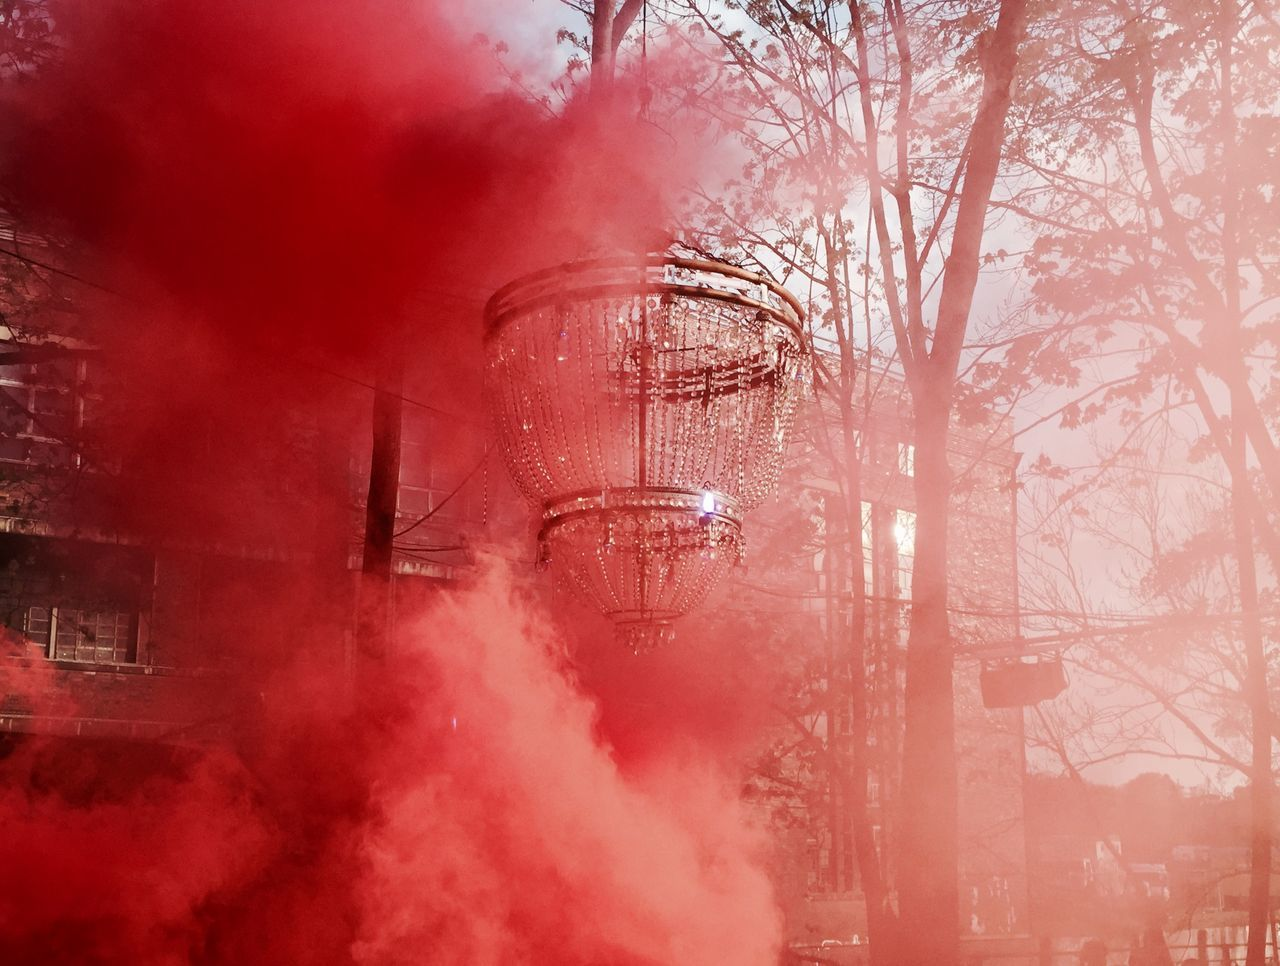 Bare Tree Chandelier Cinematography Club Clubbing Cold Temperature Dancing Day Elégance Fog Gloomy Magical Misterious Nature No People Outdoors Outdoors Photograpghy  Party Red Red Fog Snow Tree Winter